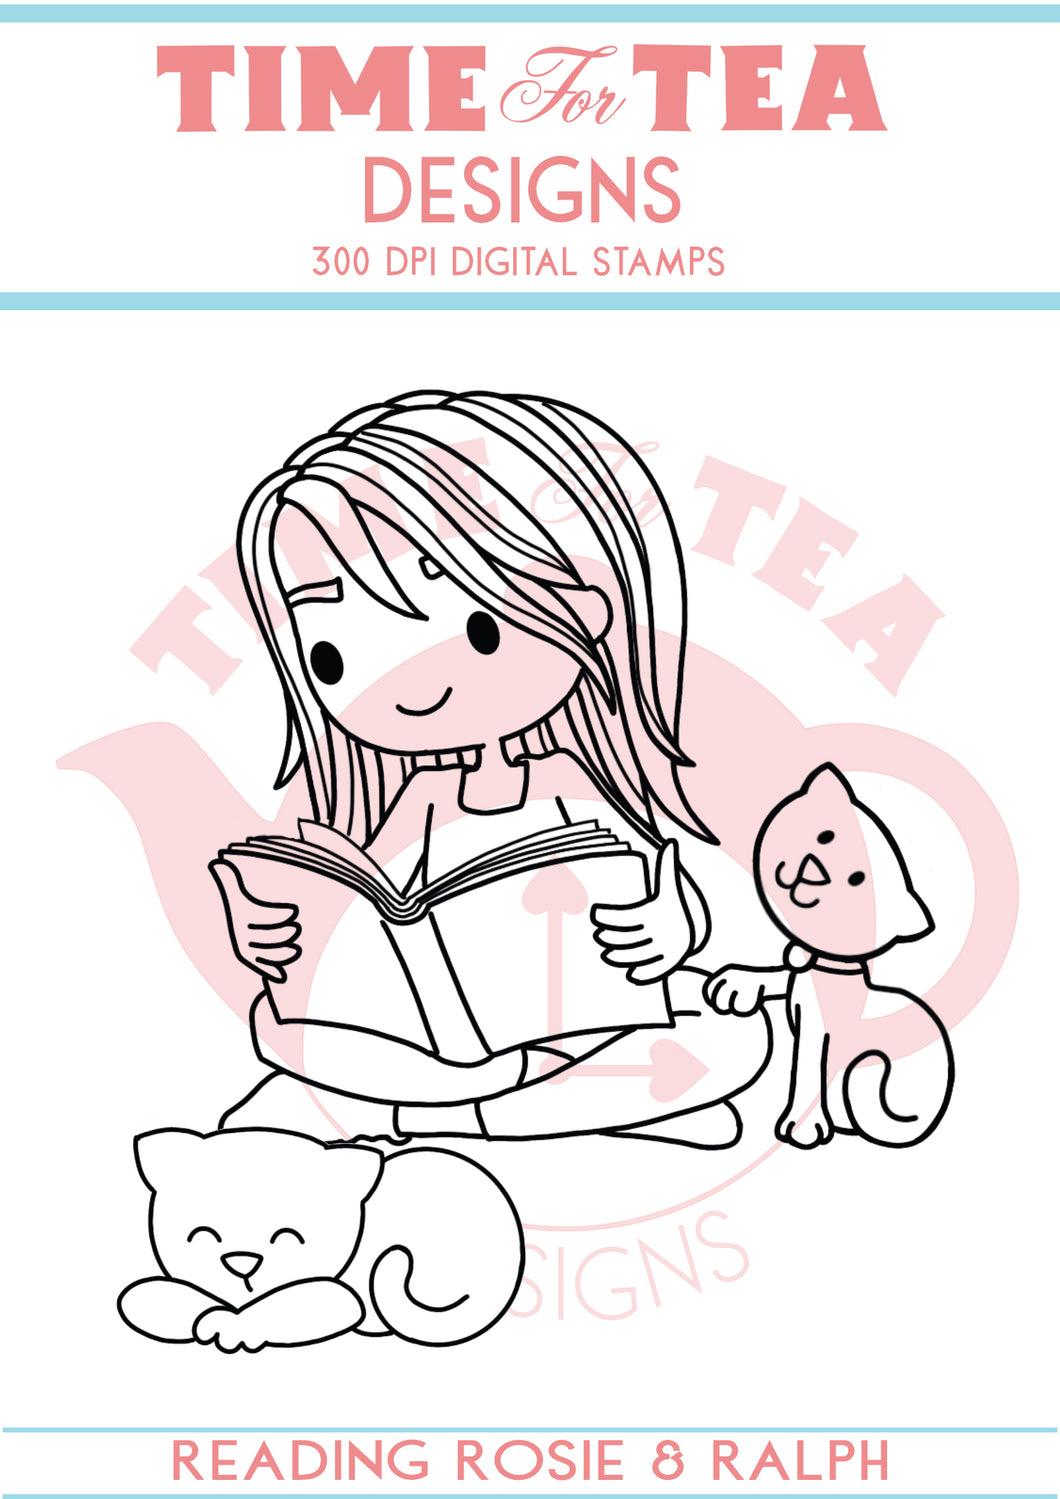 Reading Rosie and Ralph Digital Stamp